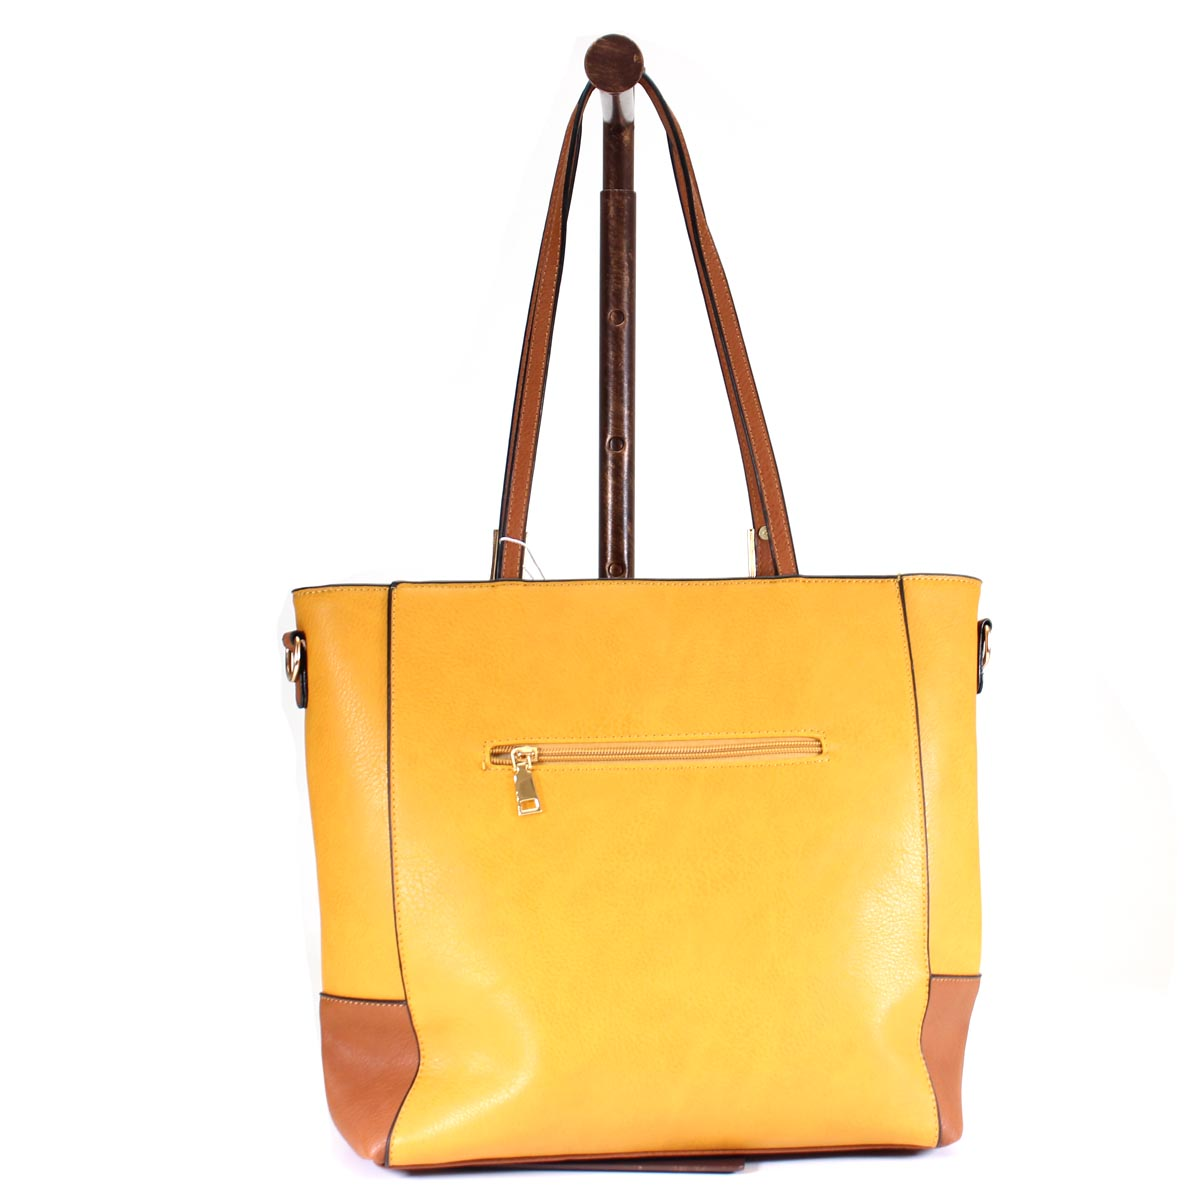 2-Tone Color Blocked Handbag